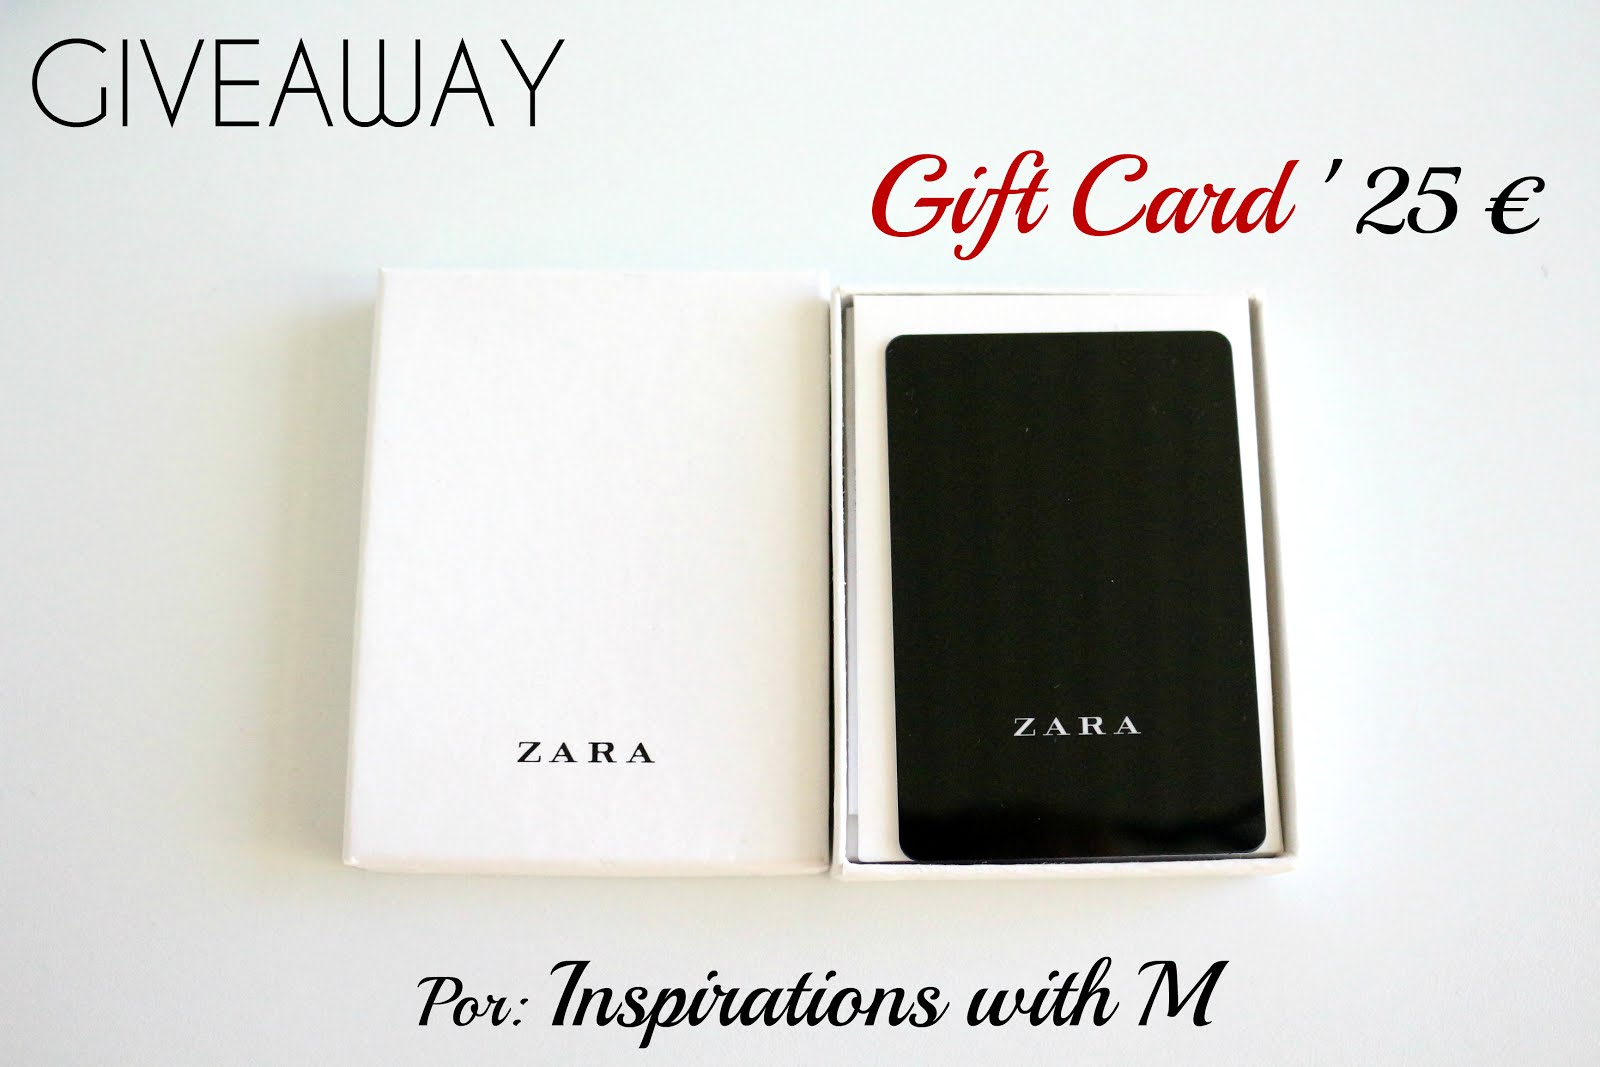 GIVEAWAY - Gift Card 25€